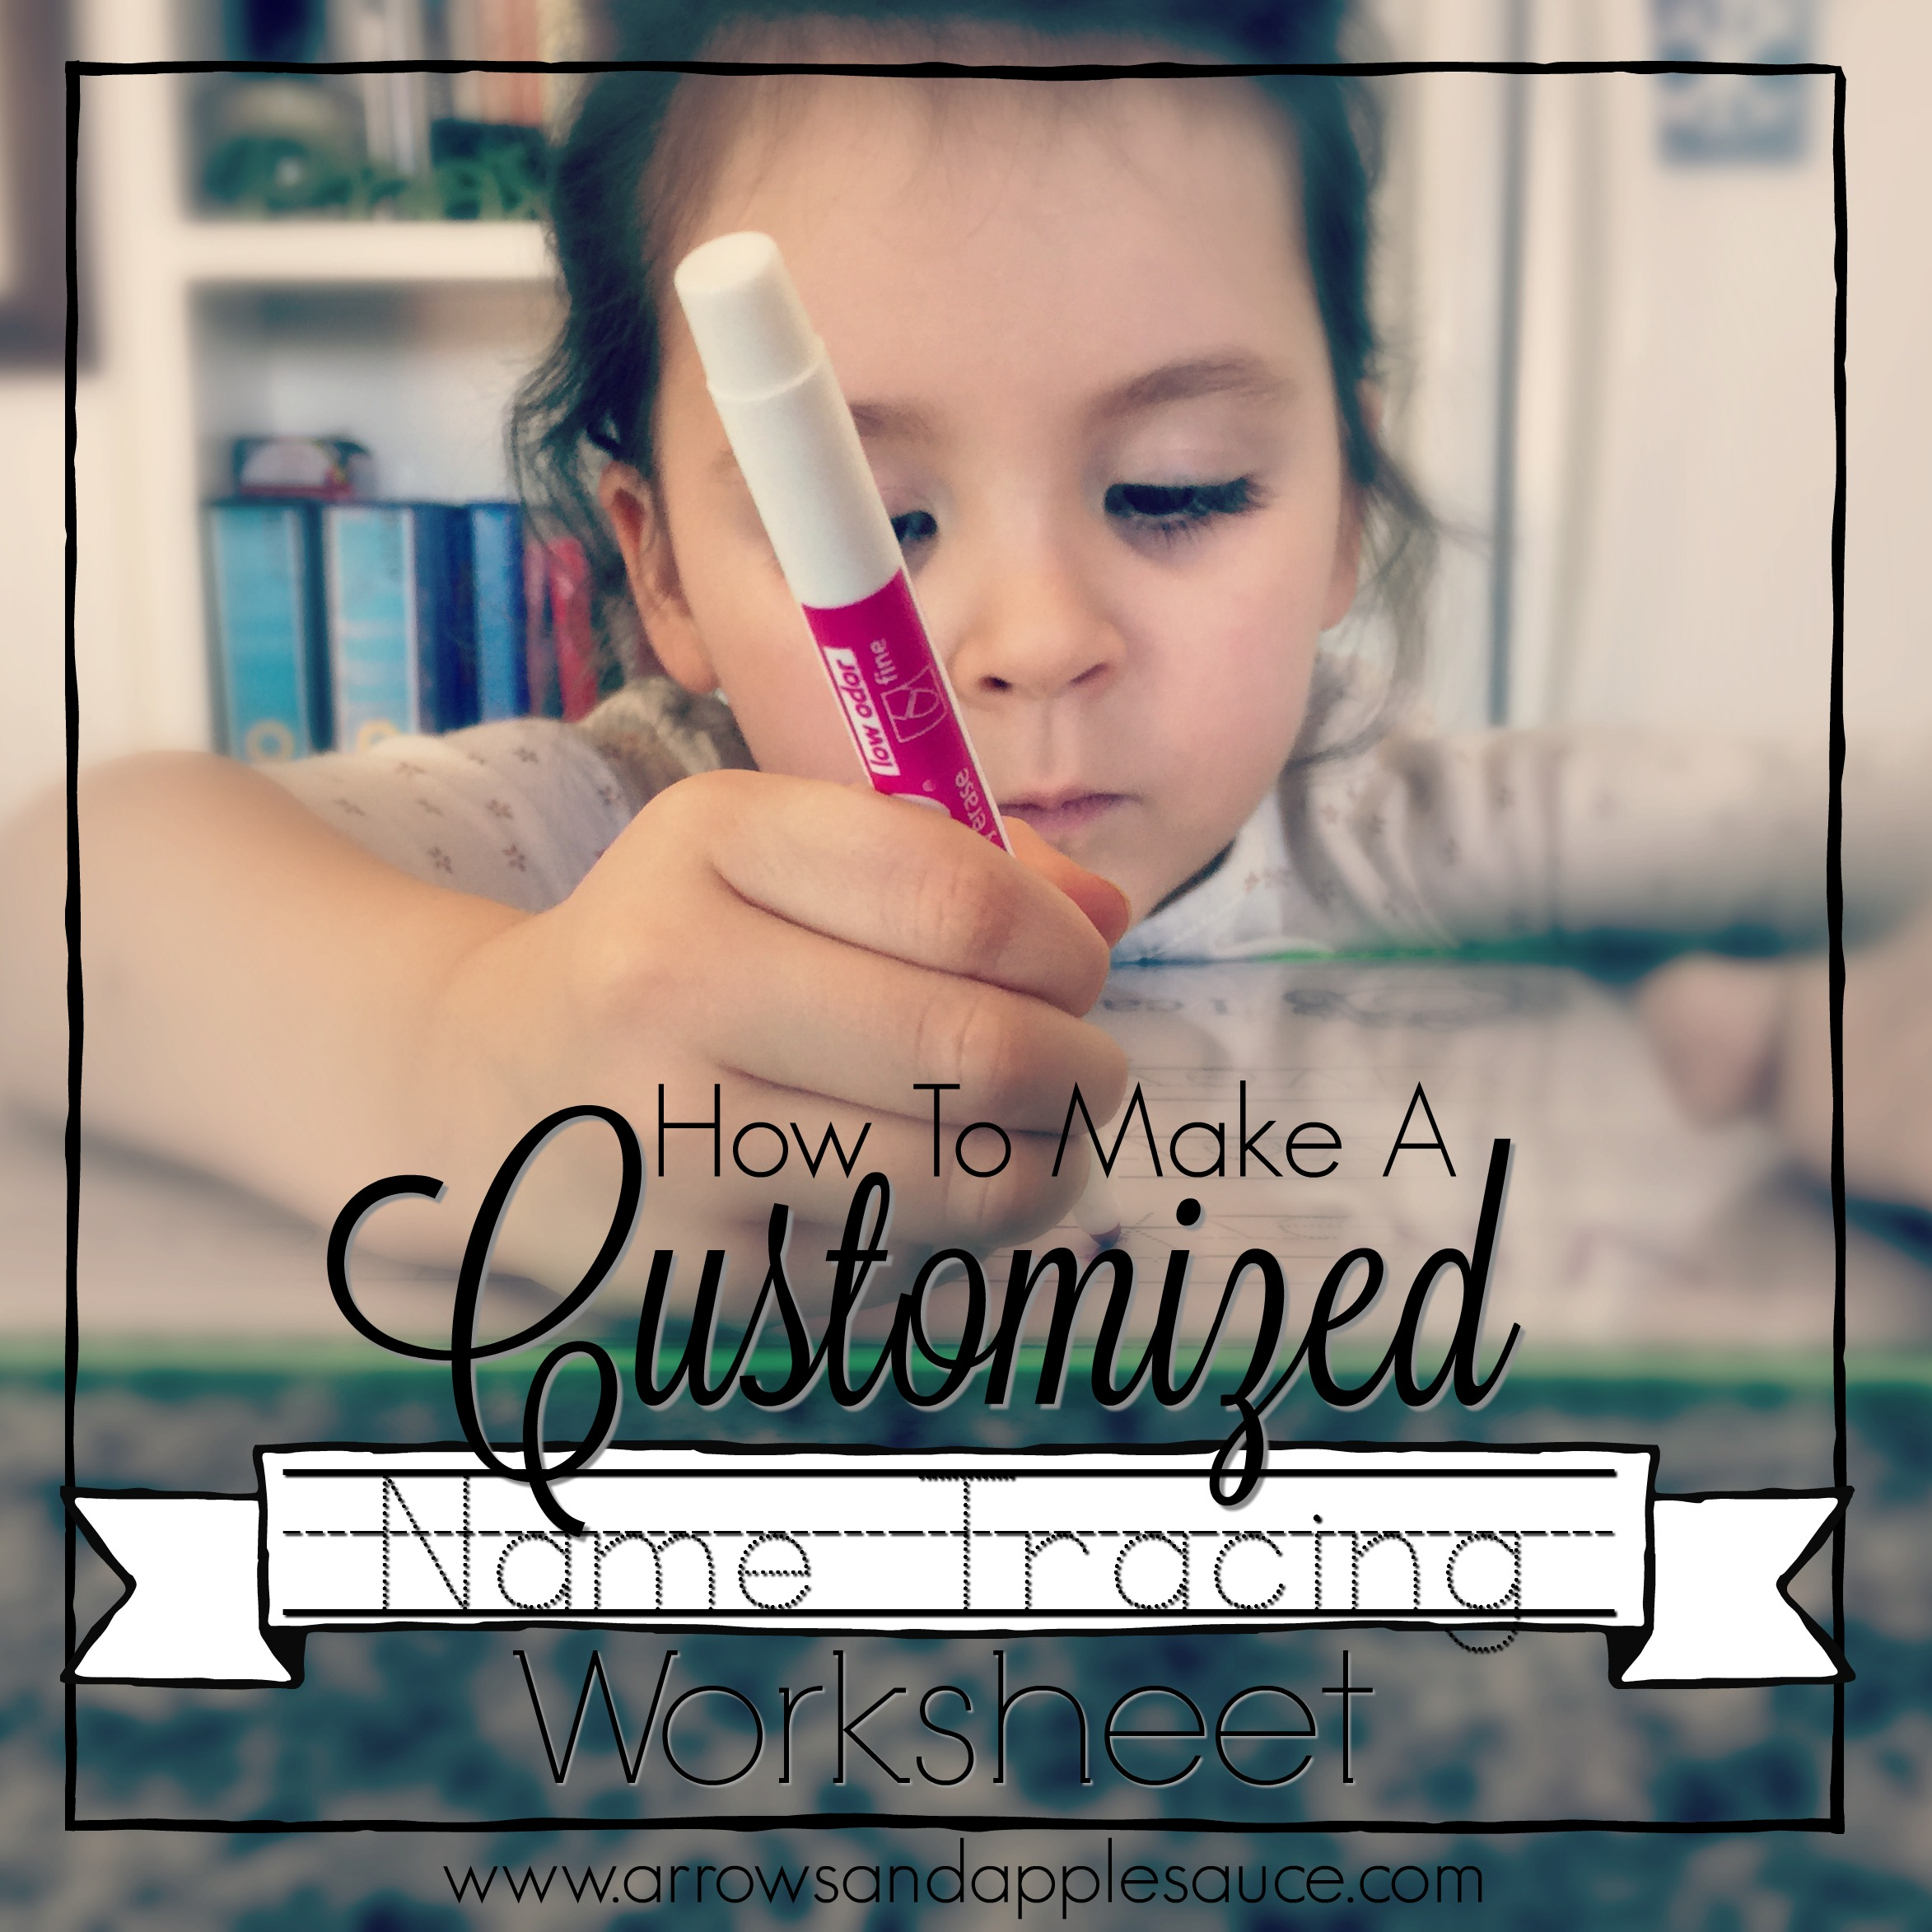 A step by step tutorial on how to make a custom name tracing worksheet for your preschooler as they learn to write. #penmanshippractice #learningtowrite #homeschoolpreschool